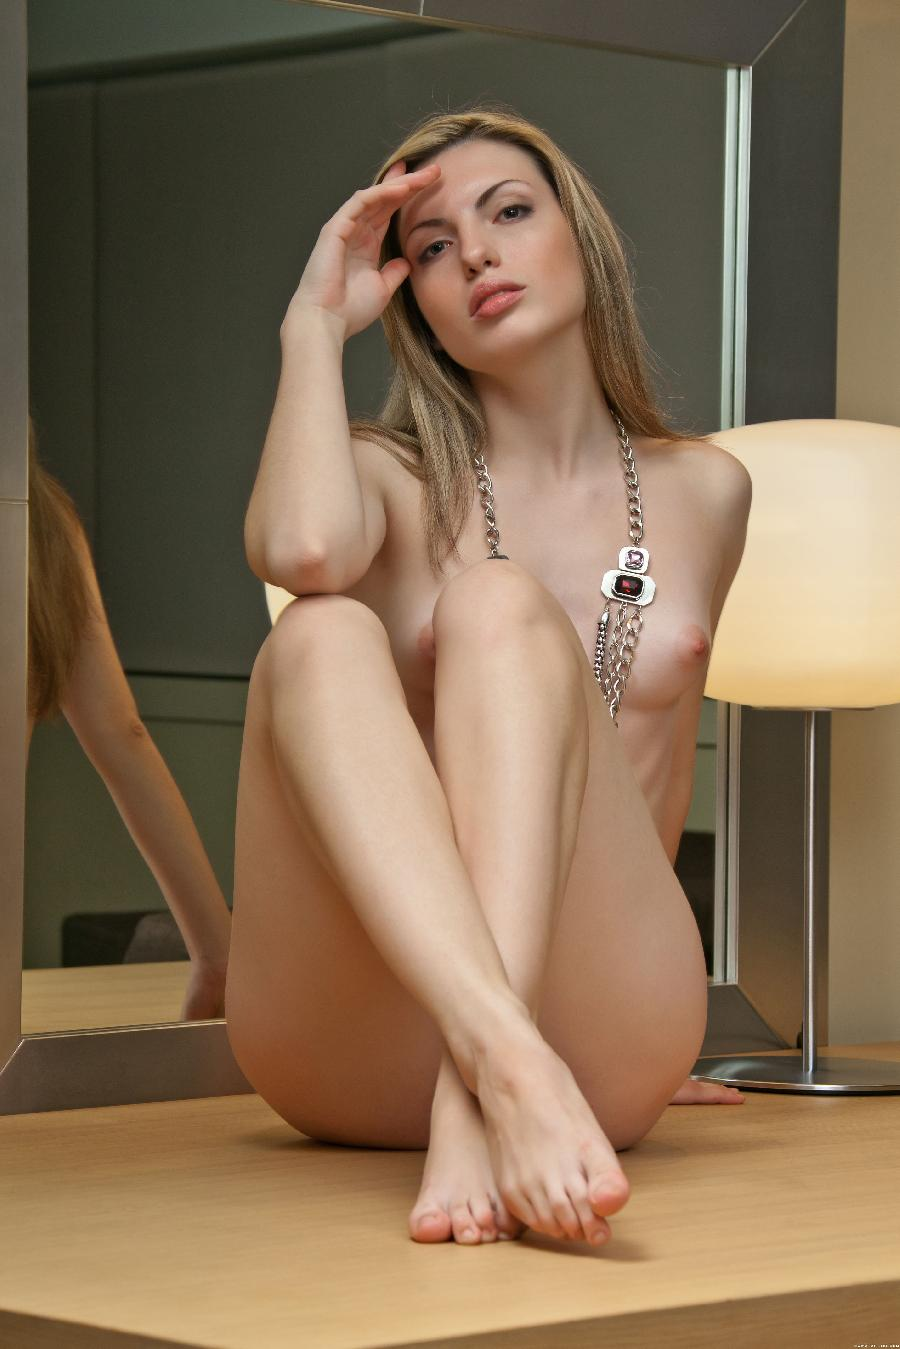 Blond woman with hard look - Maggie - 2